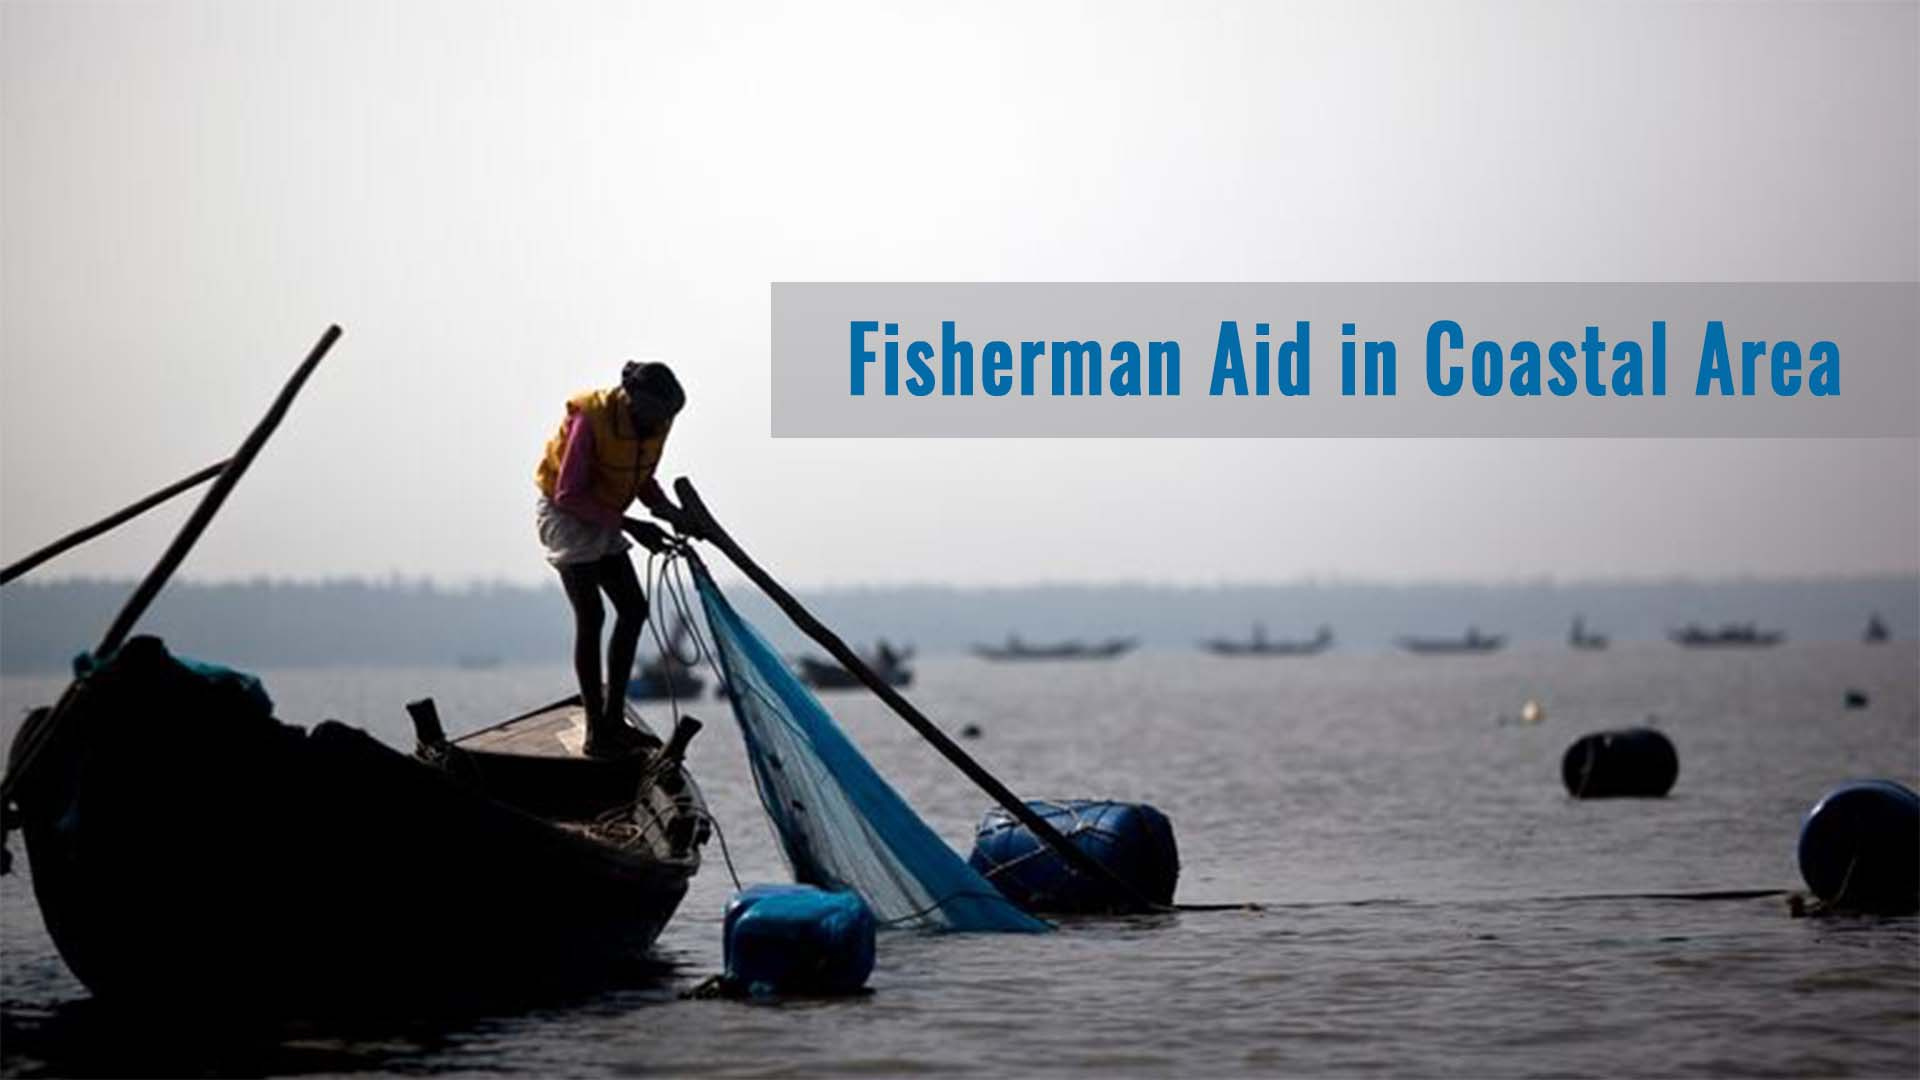 Fisherman Aid in Coastal Area